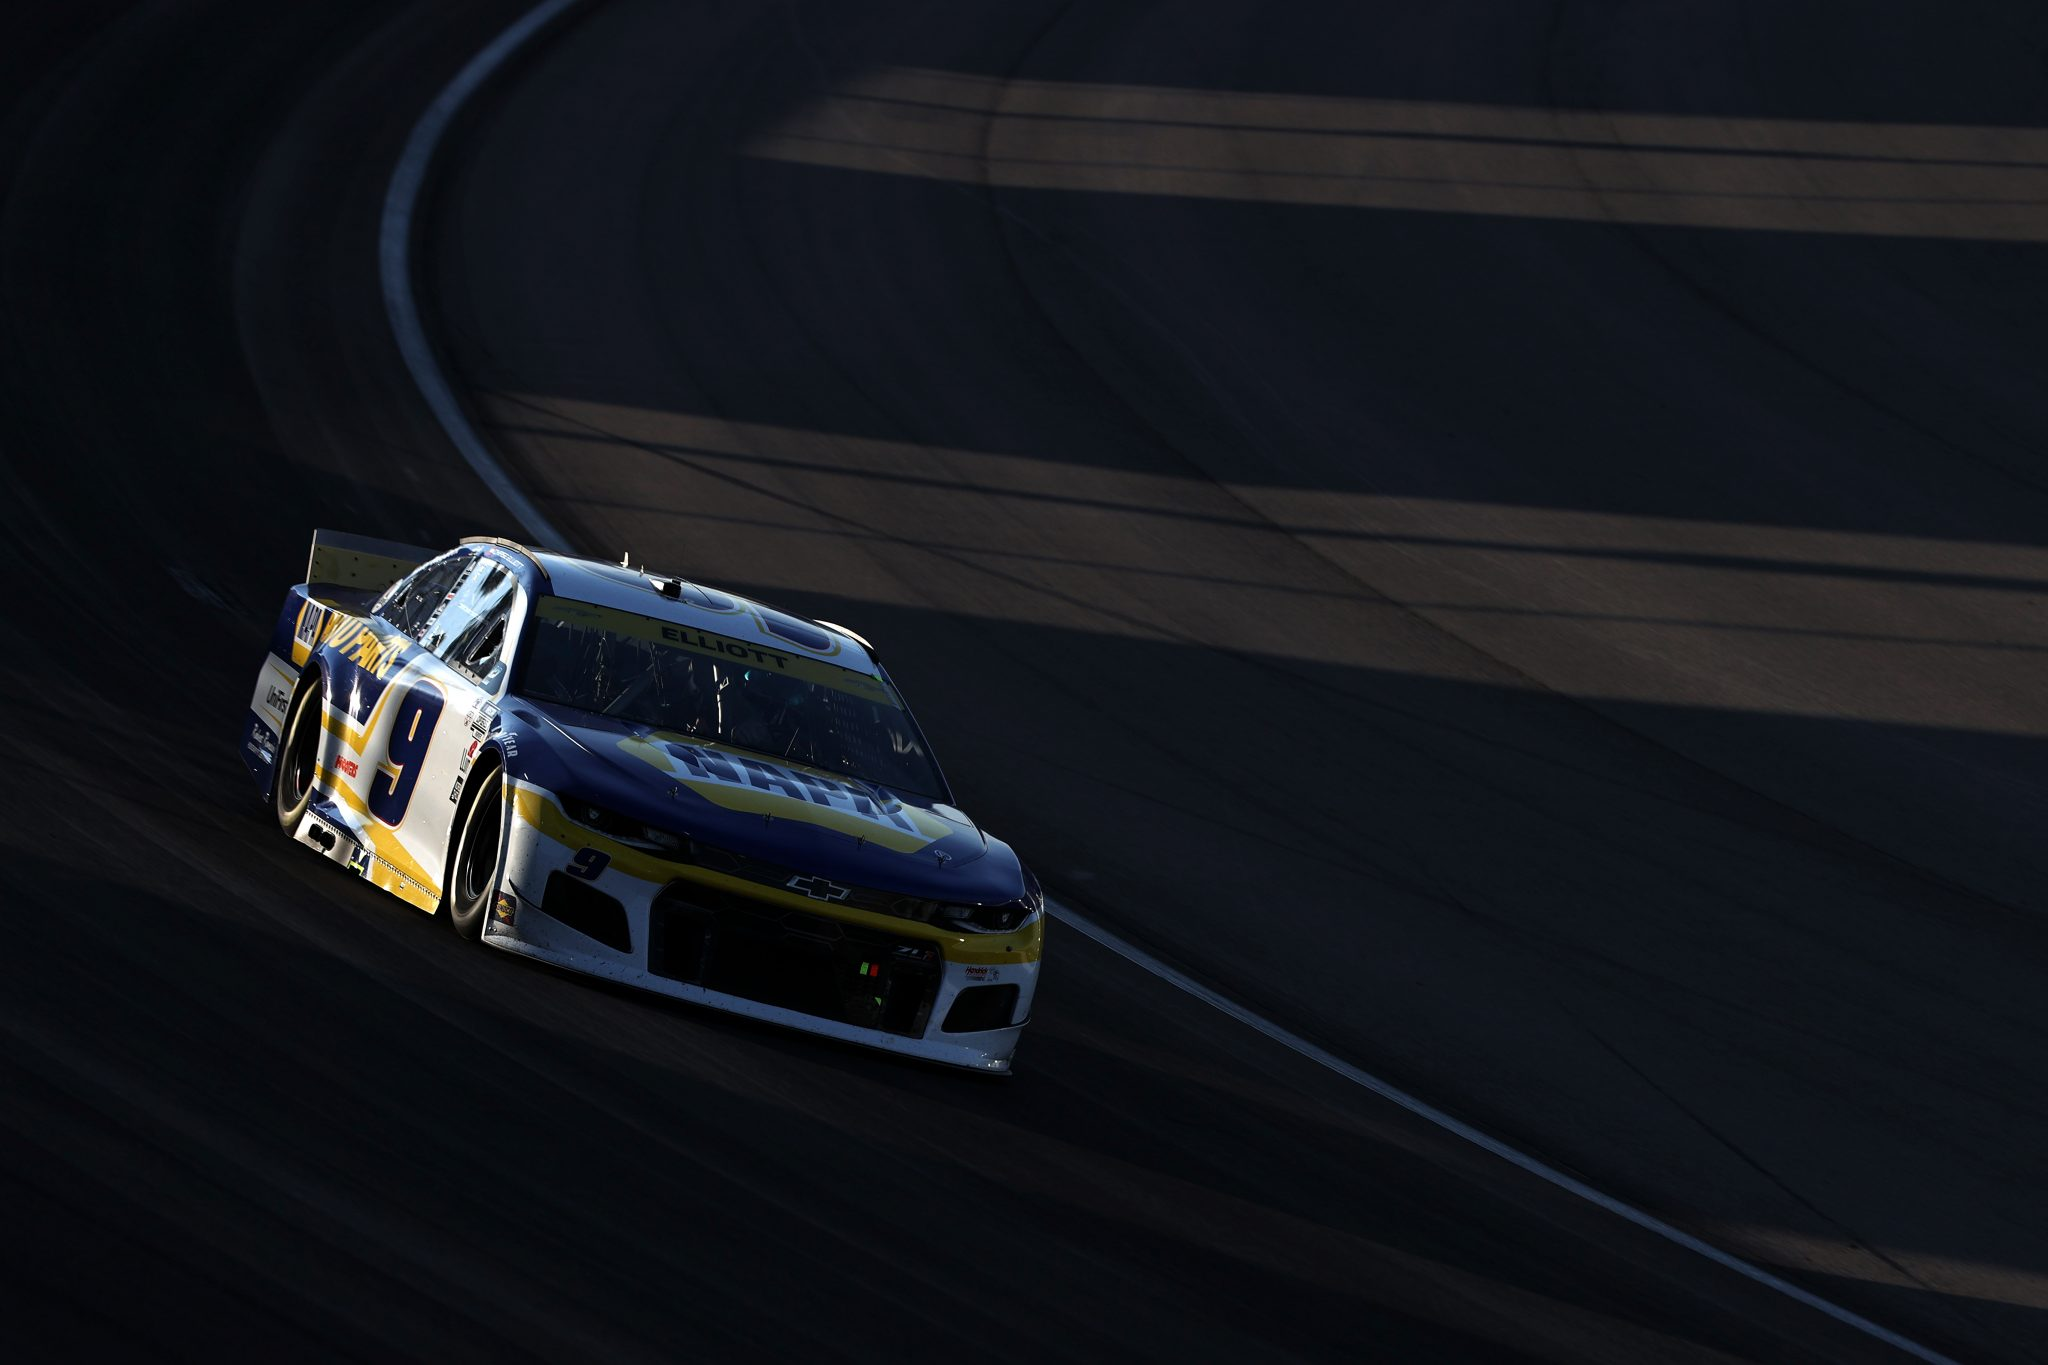 LAS VEGAS, NEVADA - SEPTEMBER 26: Chase Elliott, driver of the #9 NAPA Auto Parts Chevrolet, drives during the NASCAR Cup Series South Point 400 at Las Vegas Motor Speedway on September 26, 2021 in Las Vegas, Nevada. (Photo by Meg Oliphant/Getty Images)   Getty Images